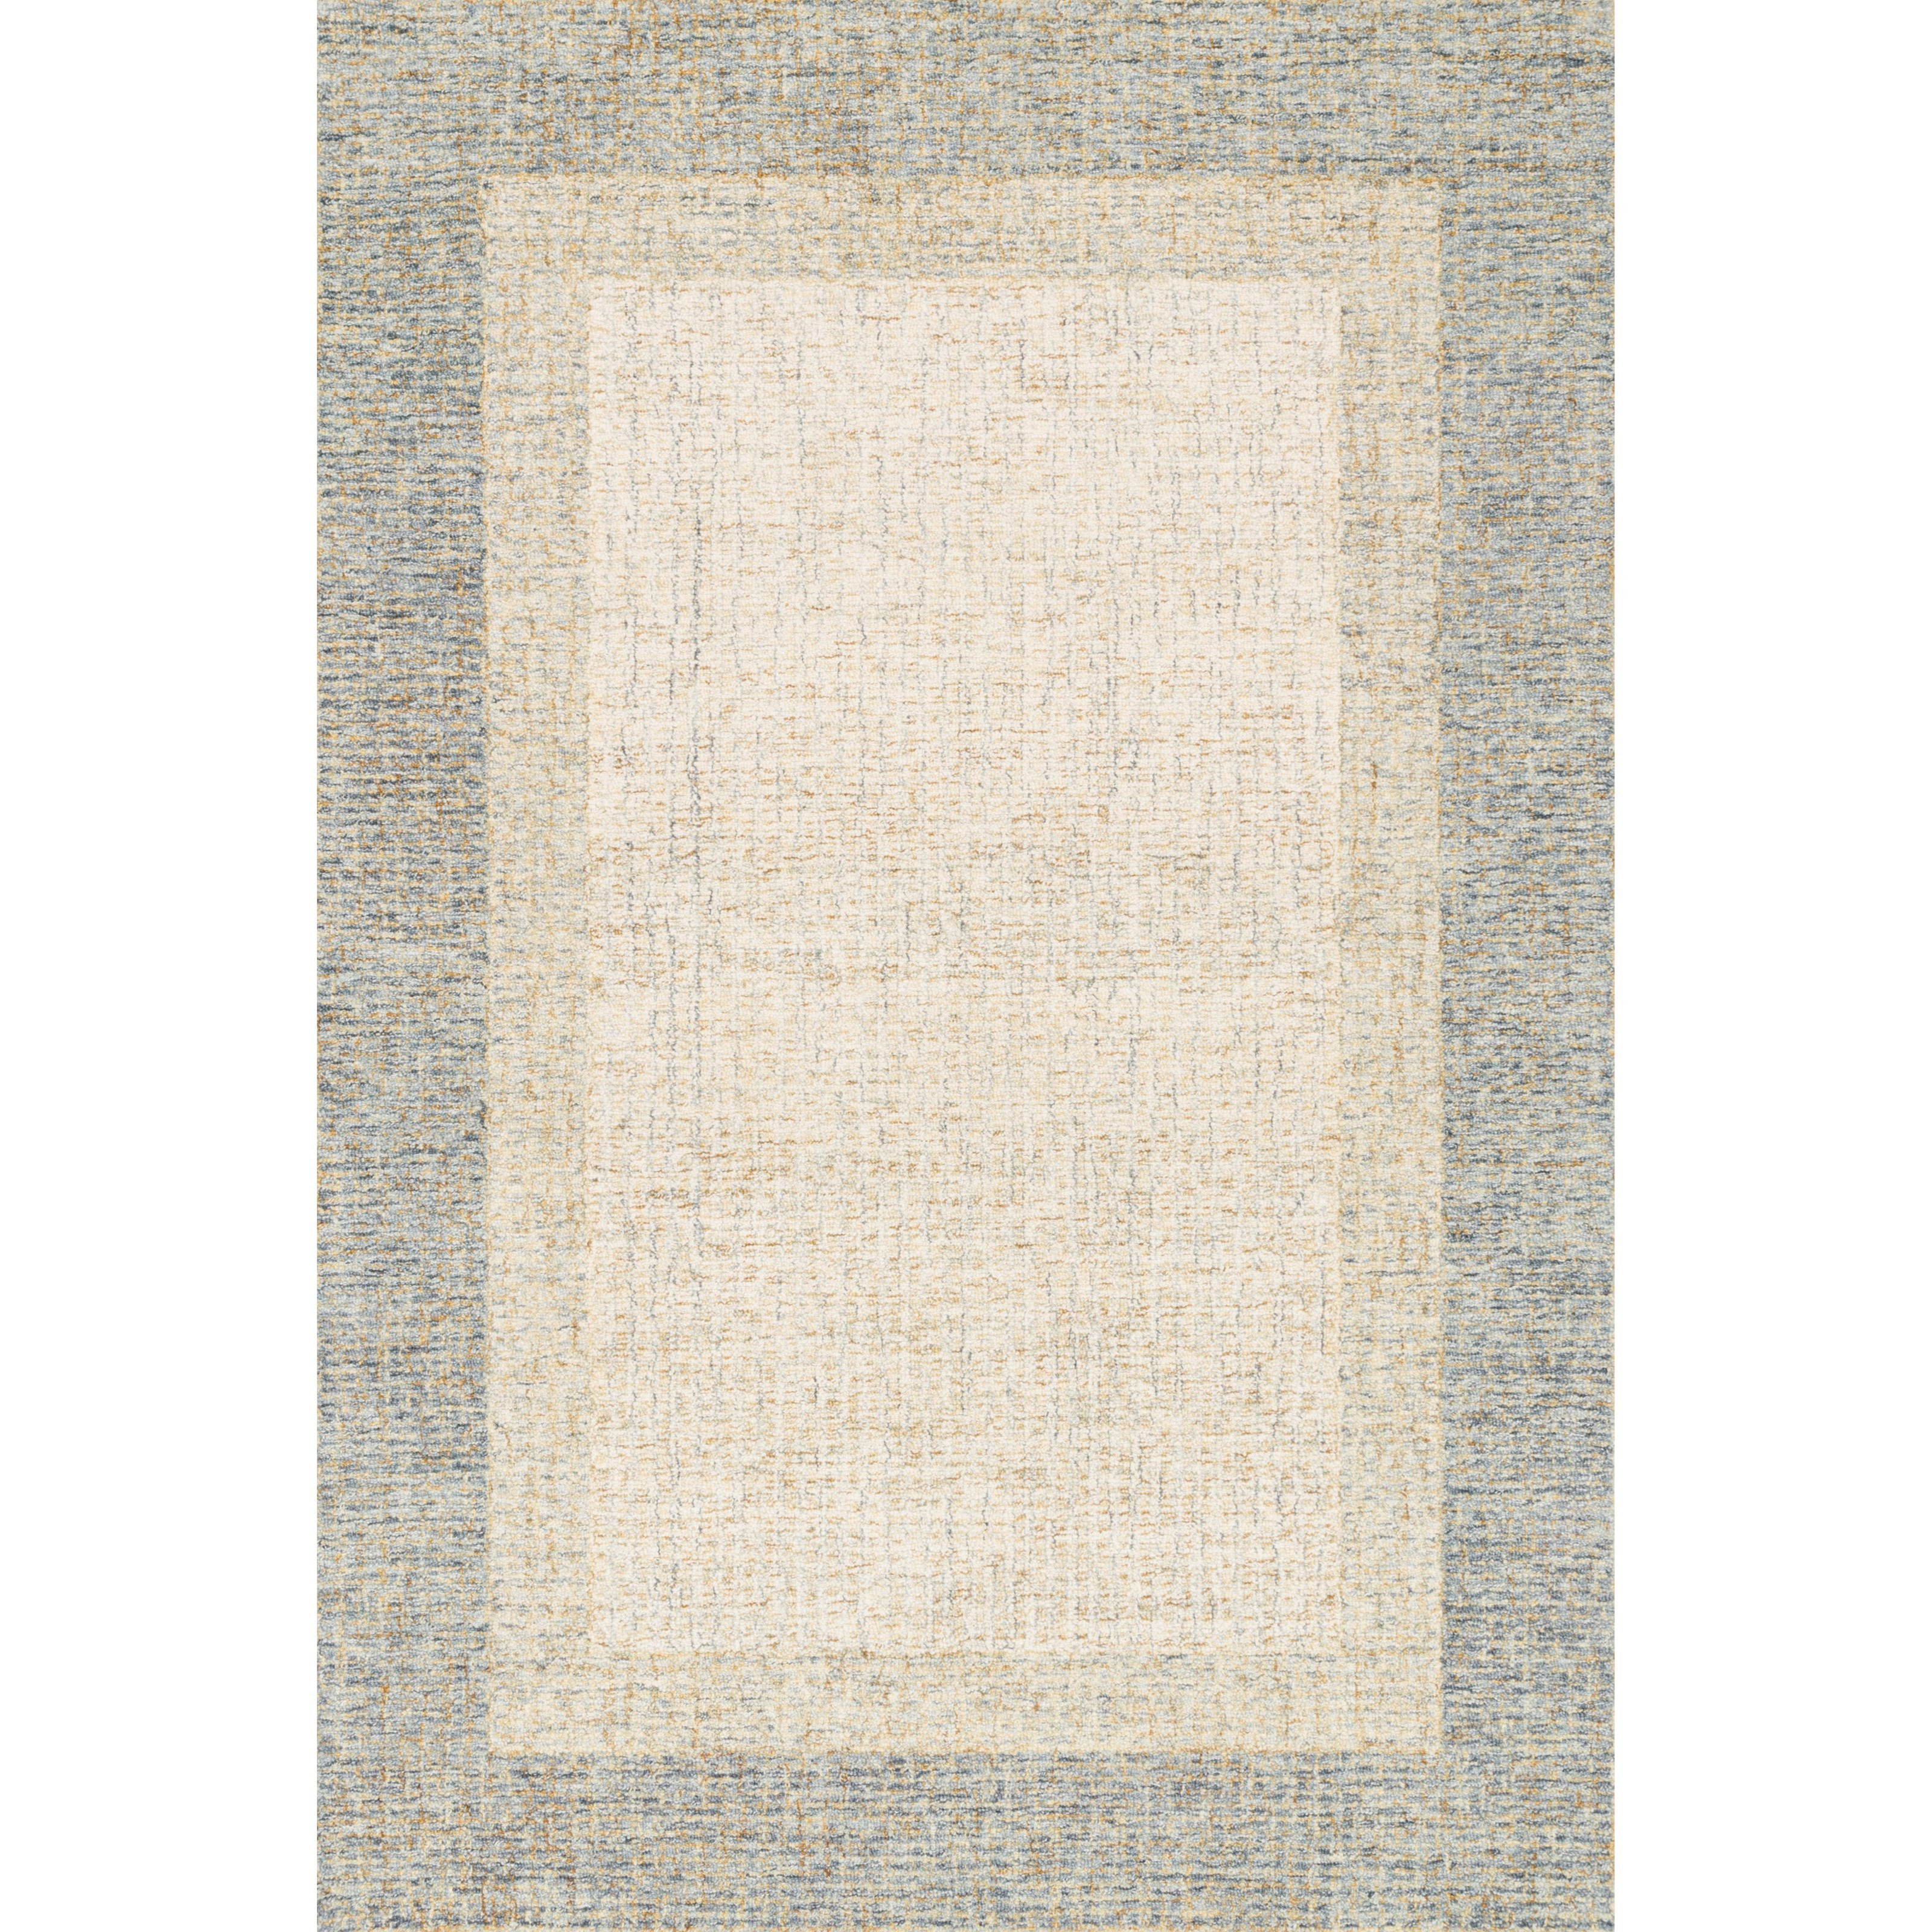 """Rosina 2'6"""" x 7'6"""" Sand Rug by Loloi Rugs at Virginia Furniture Market"""